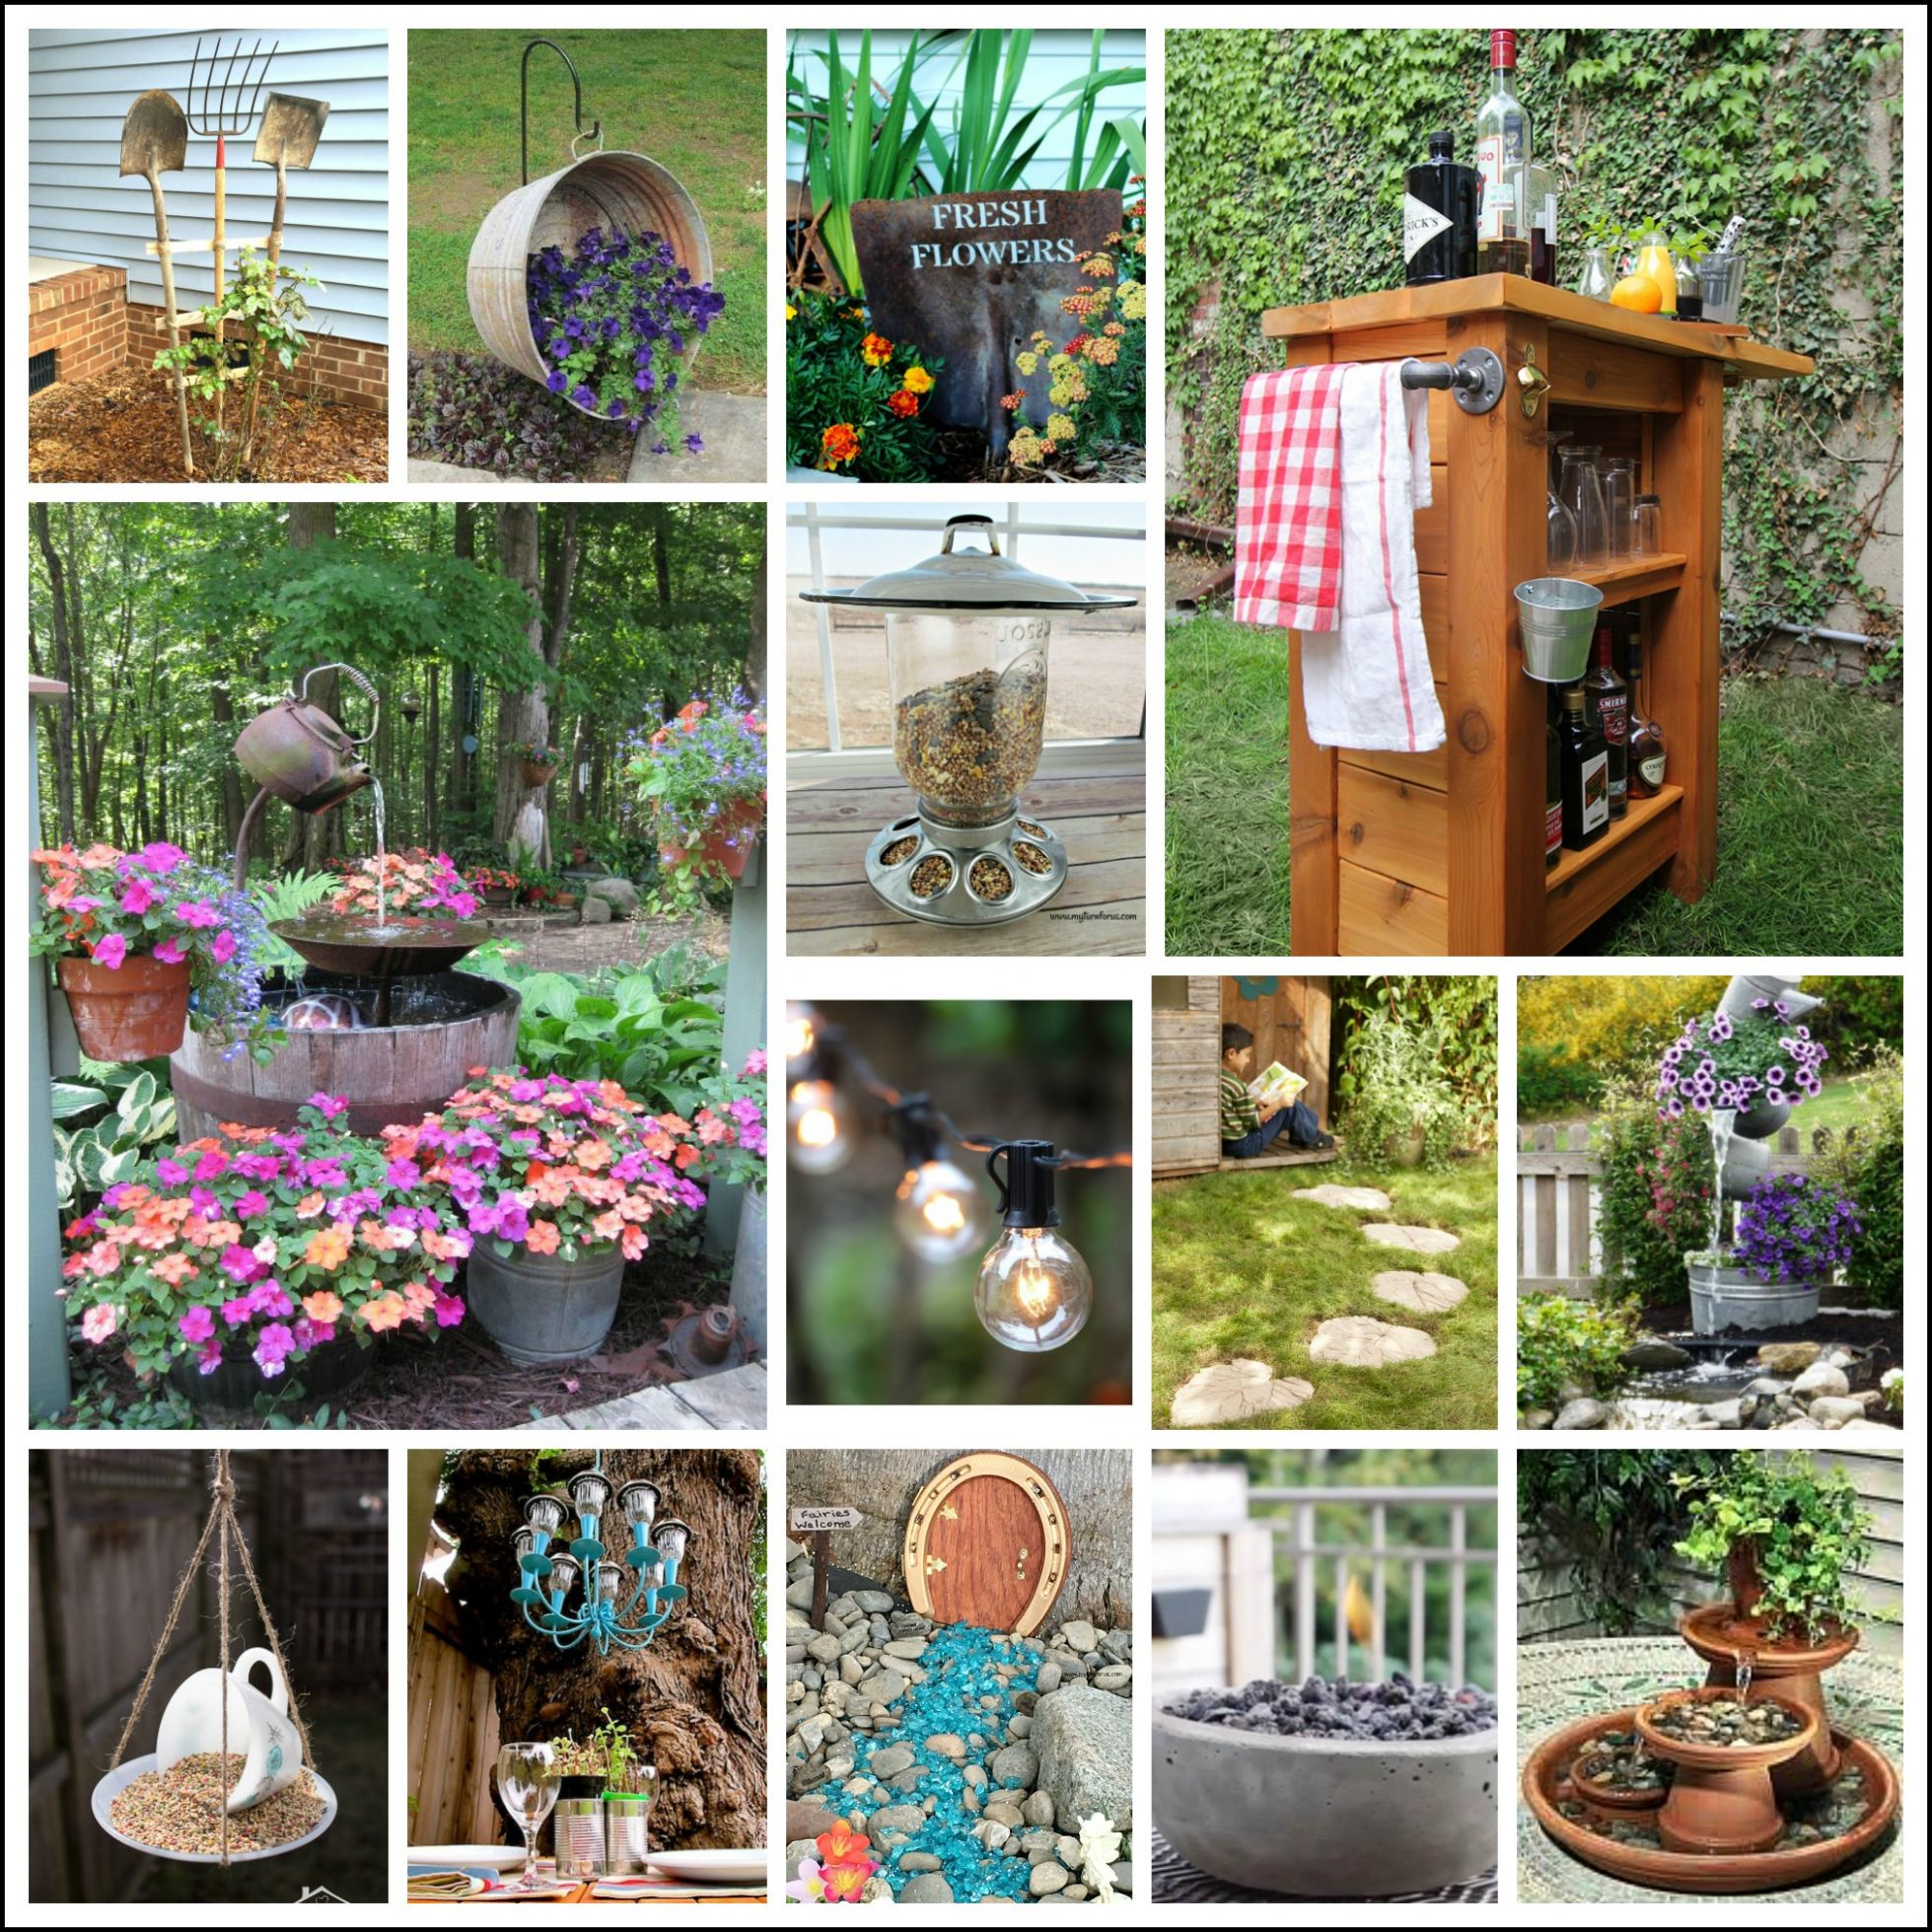 9 Best DIY Backyard Projects and Garden Ideas - My Turn for Us - garden ideas diy